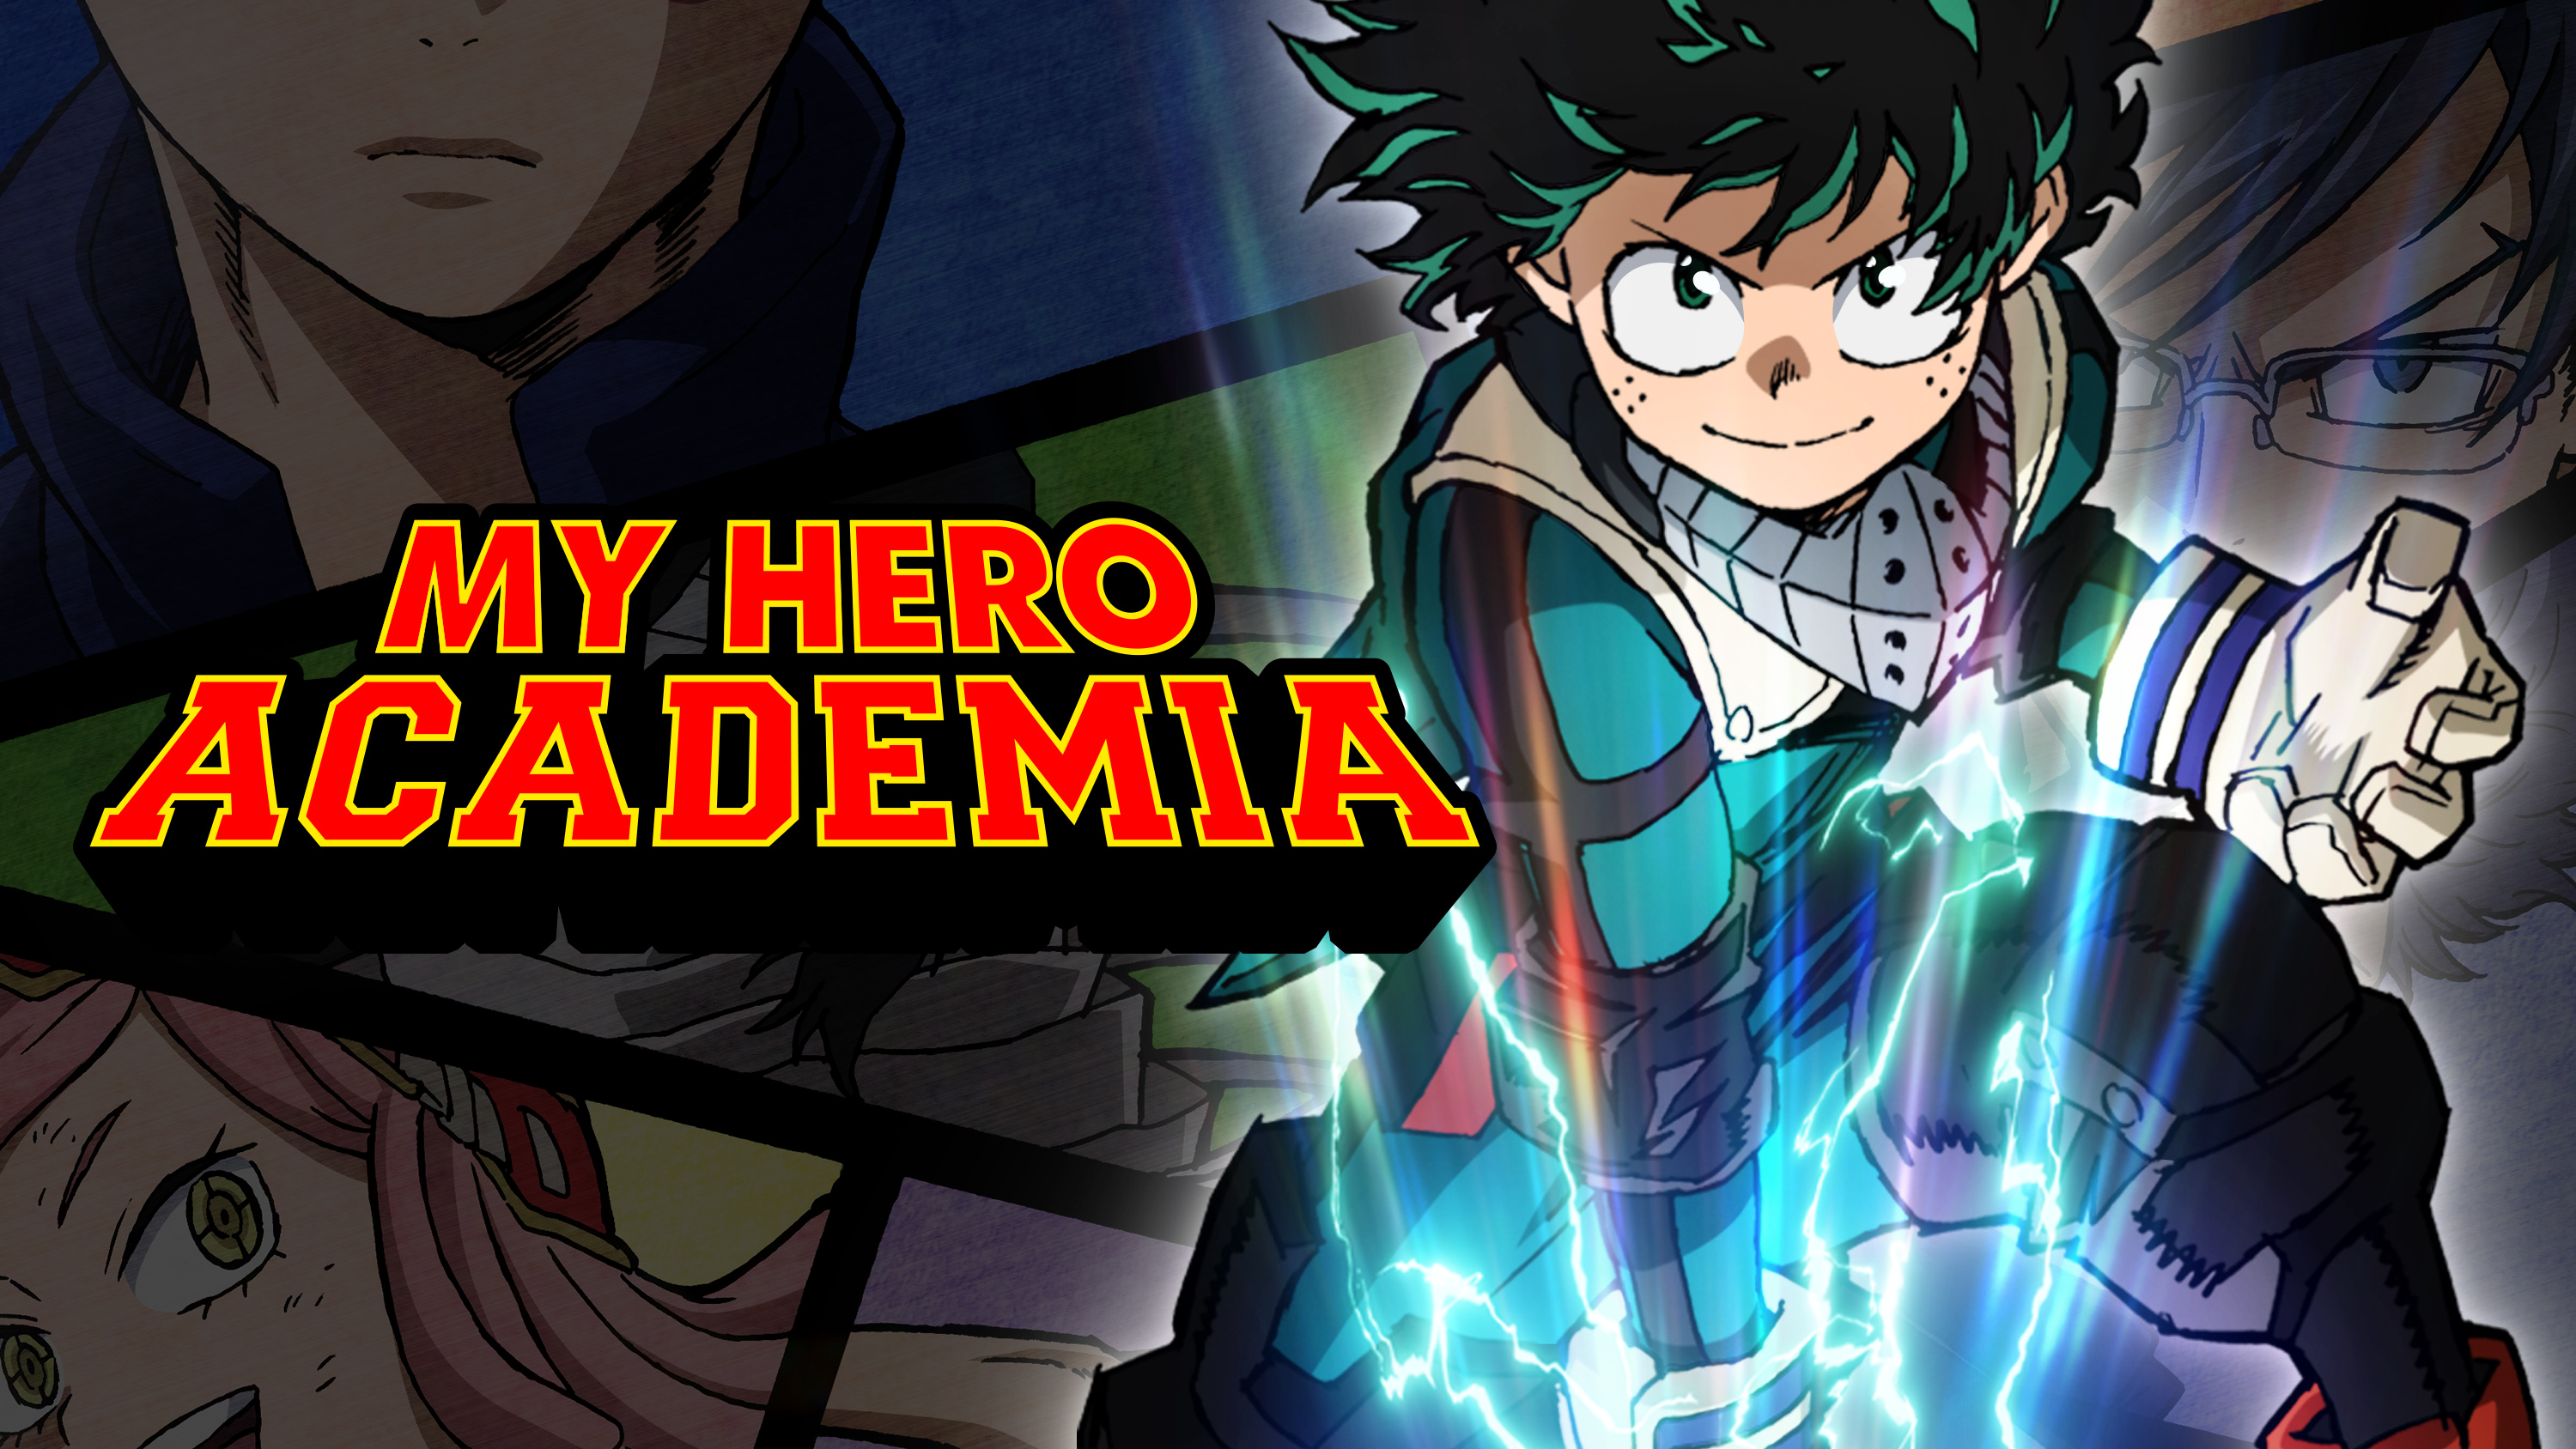 My Hero Academia Chapter 262 Release Date, Spoilers Mirko will Fight the Super Nomus despite Injury